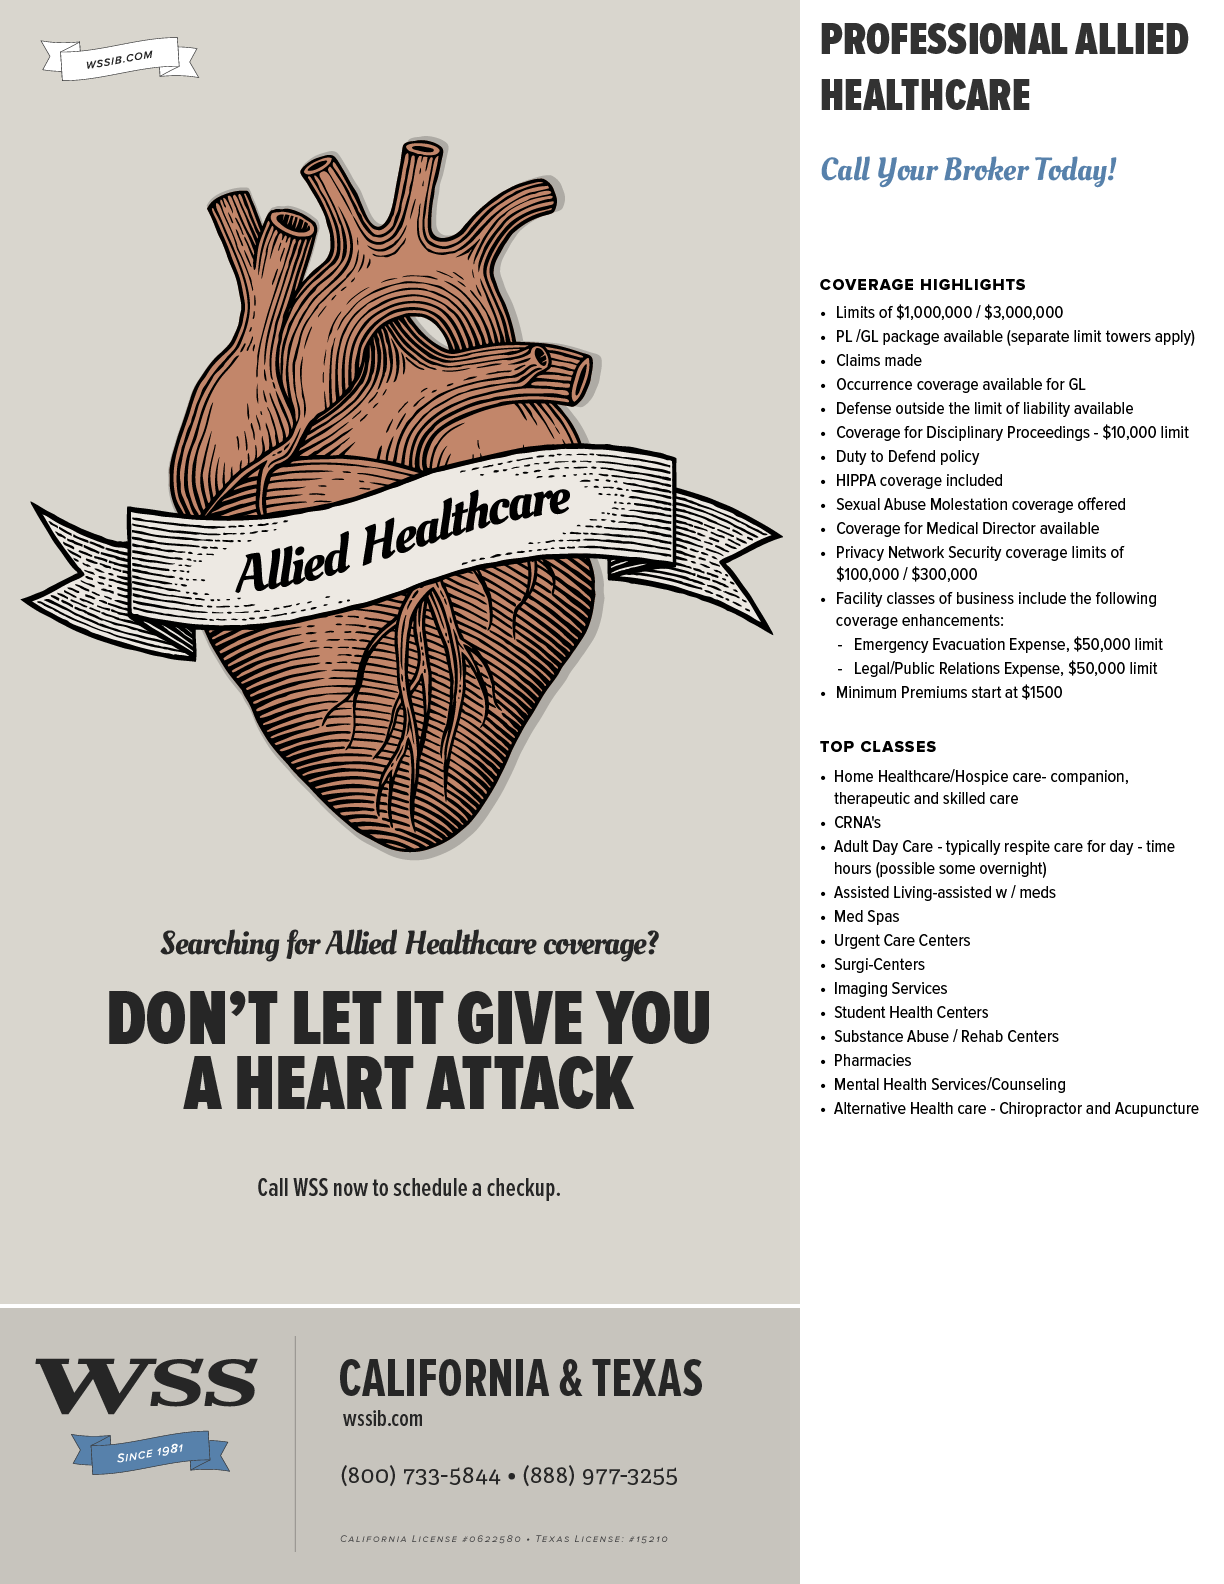 WSS-Flyer-AlliedHealthcare.png